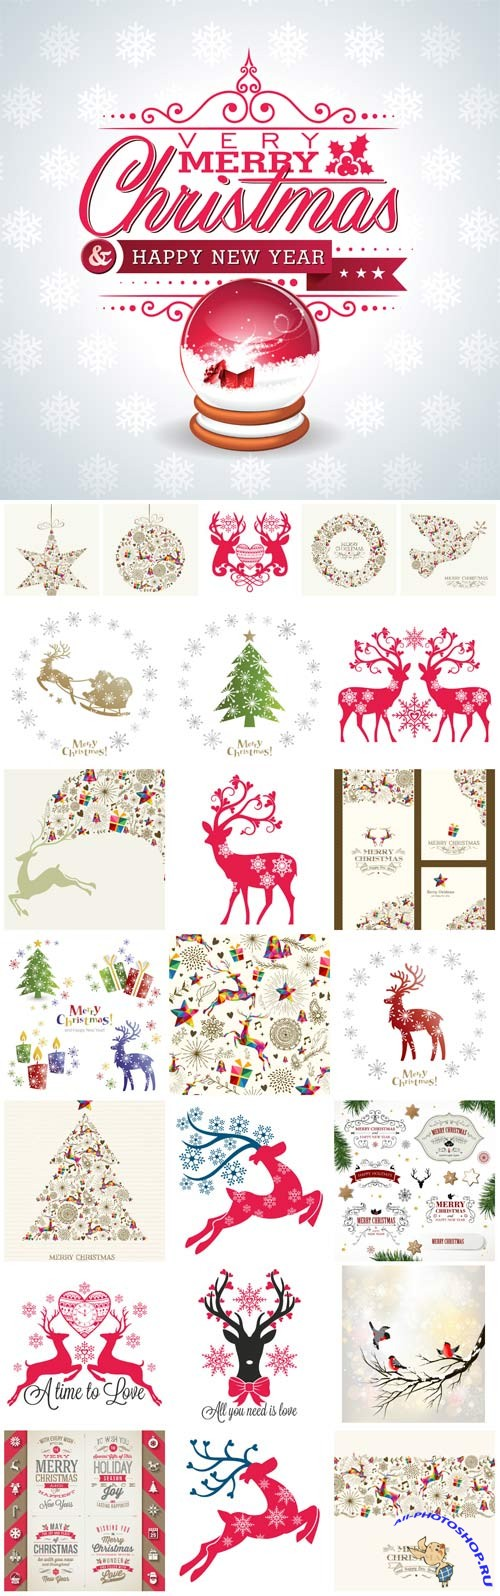 New Year and Christmas illustrations in vector №3